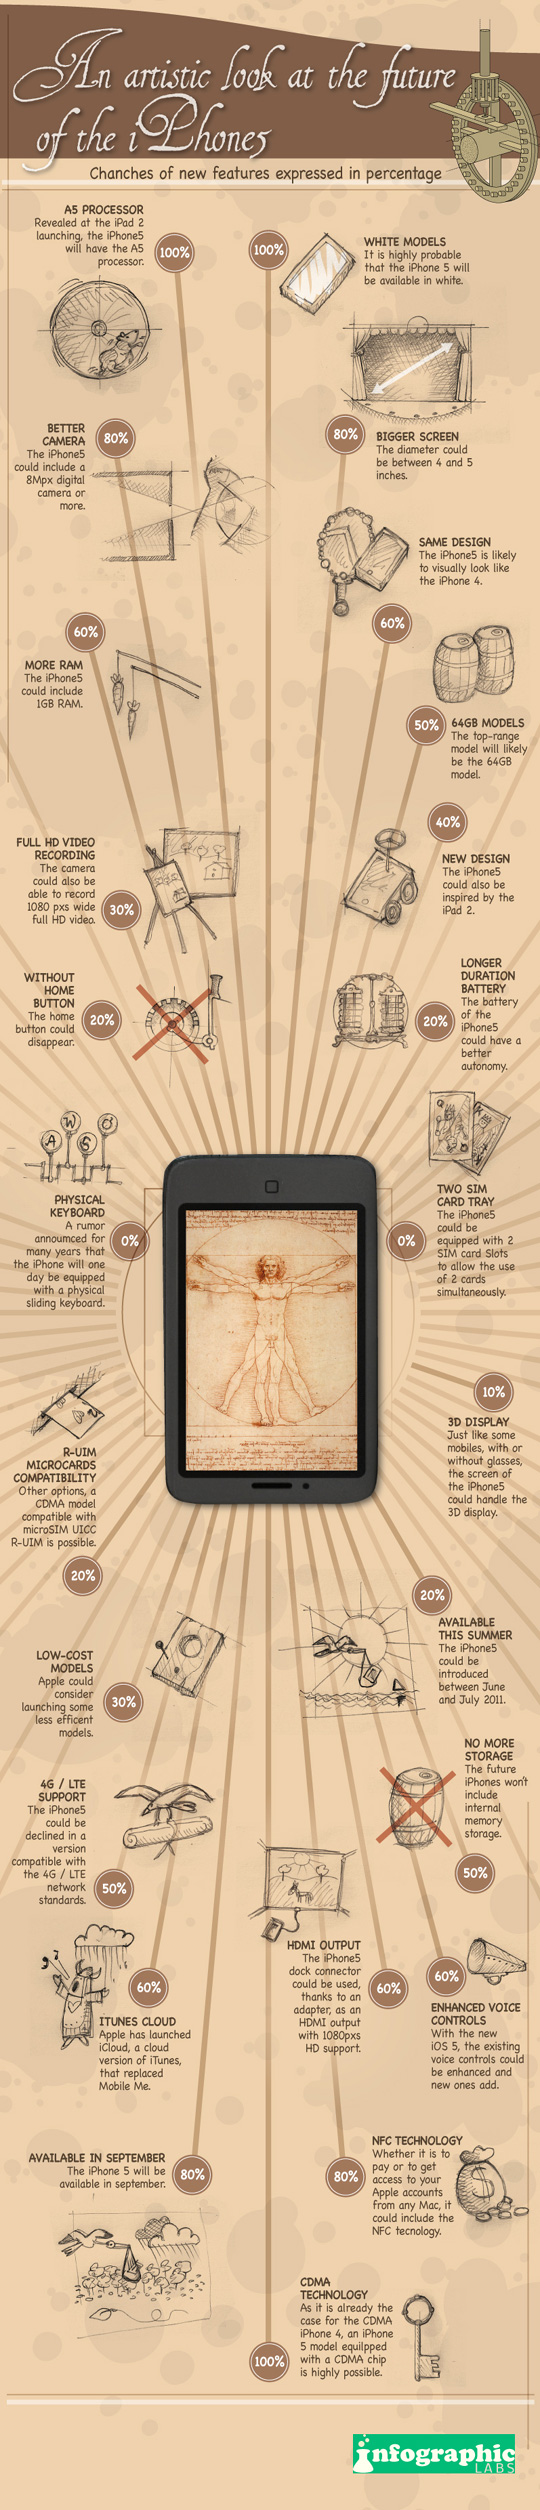 An Artistic Look At The iPhone 5 Speculation [Infographic] 9